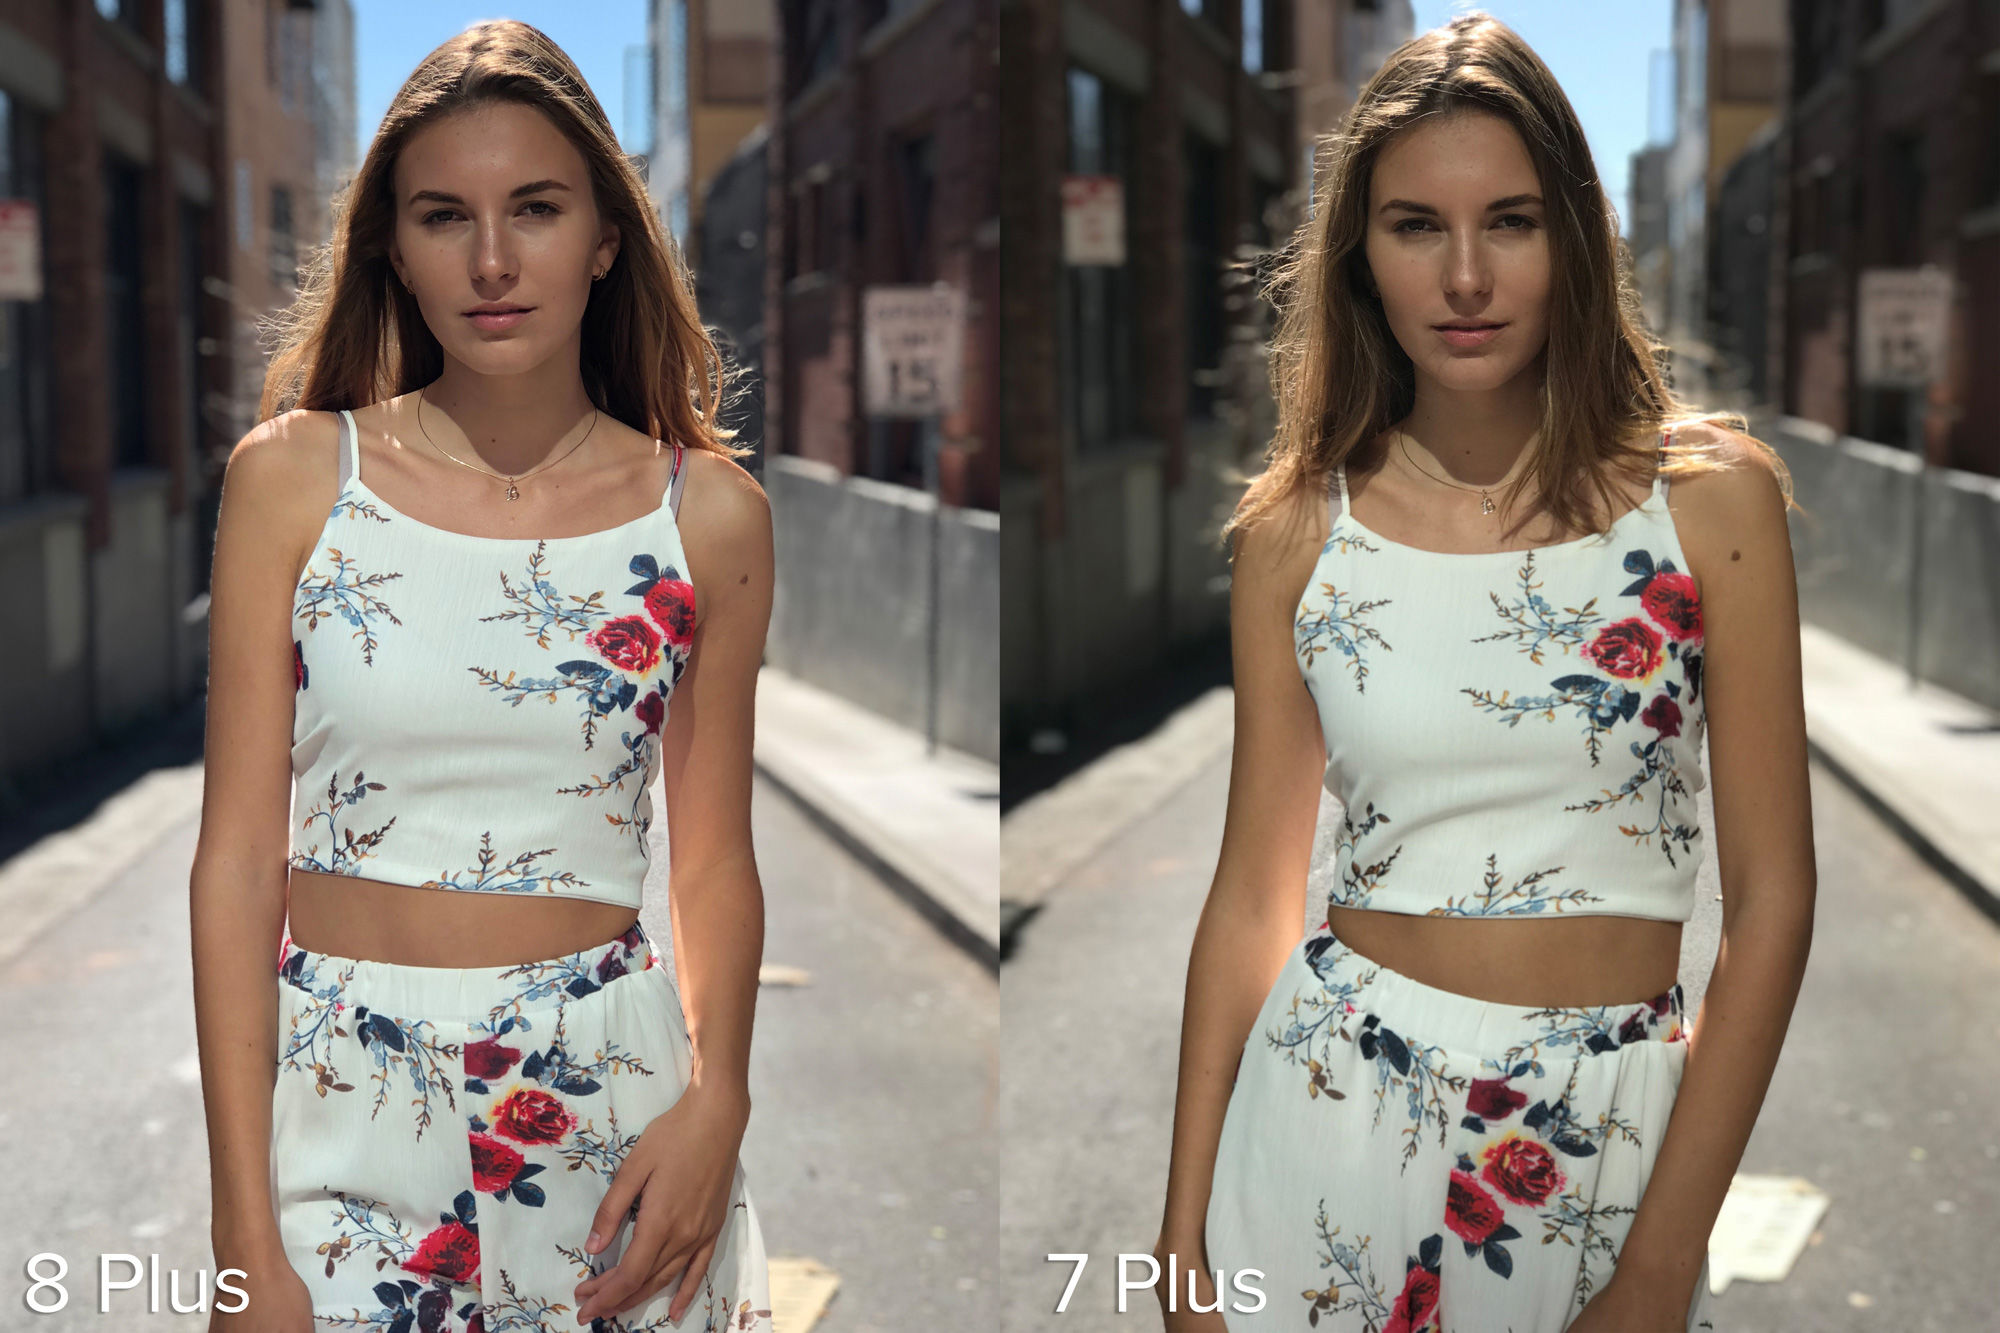 Iphone 8 Plus Vs Iphone 7 Plus Camera Test Which Takes The Best Photos Features Digital Arts